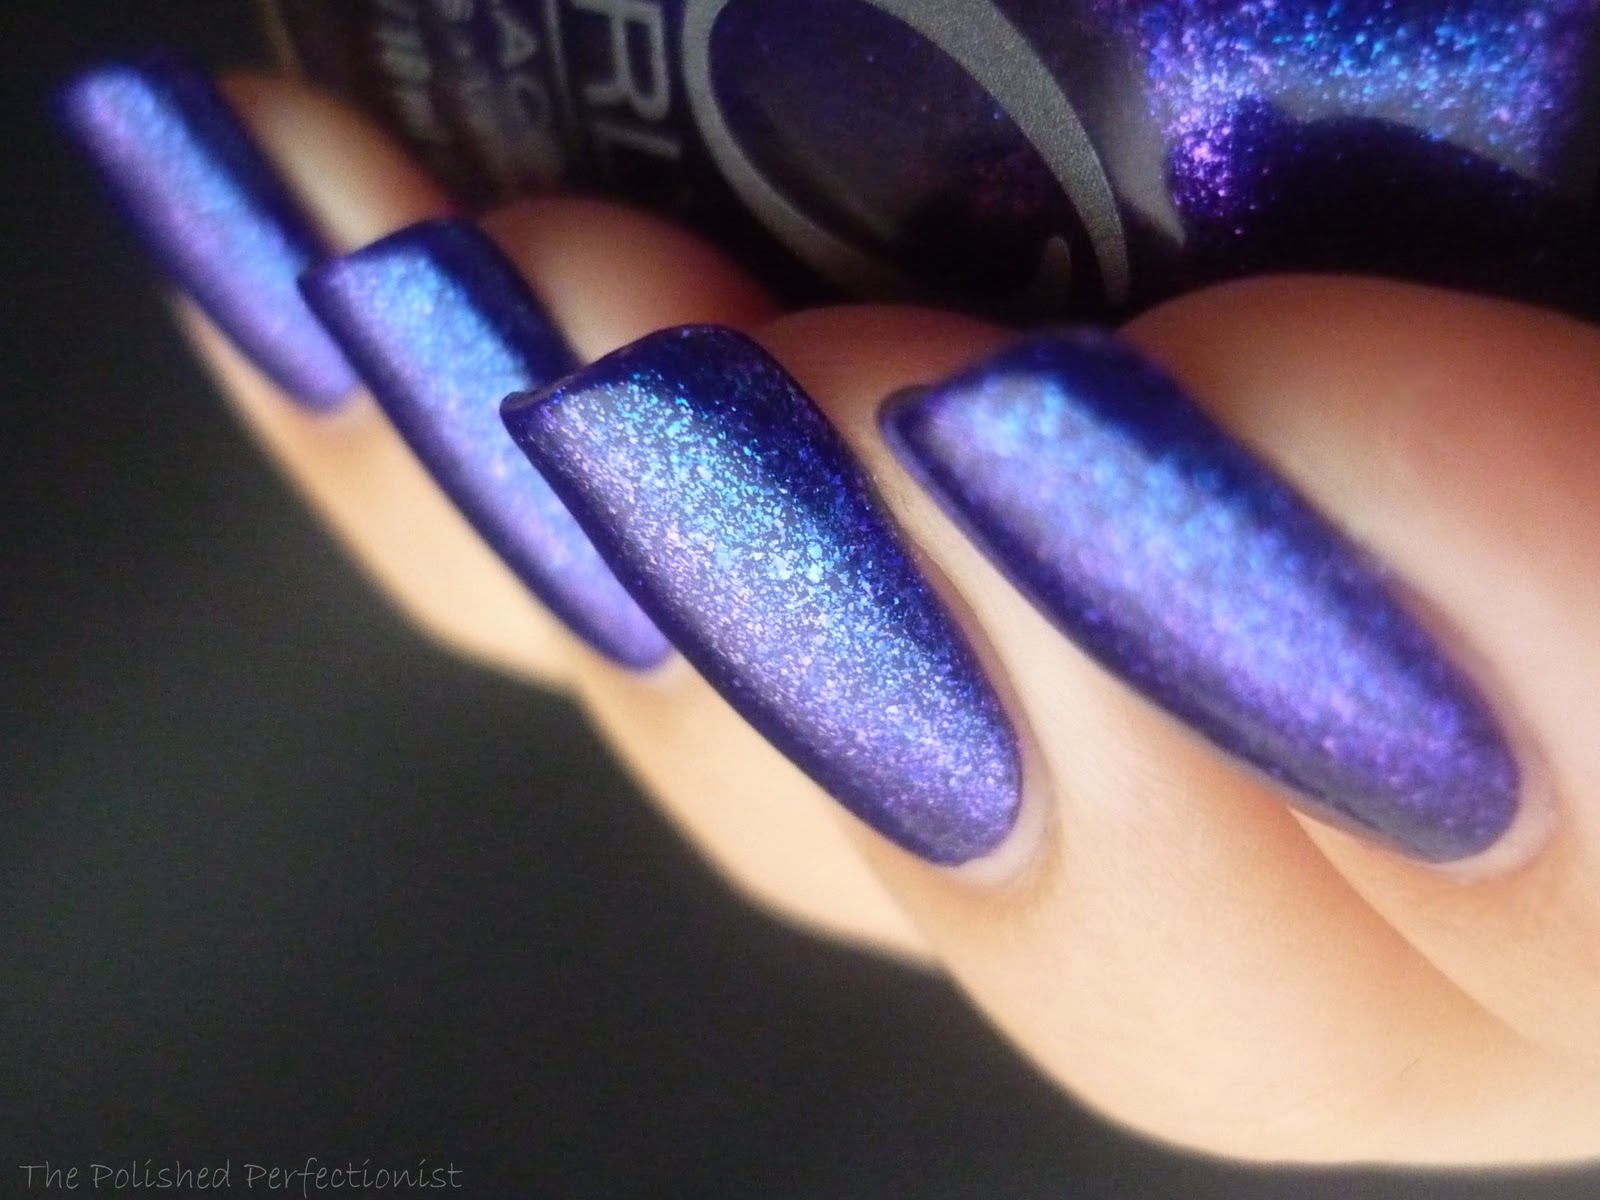 The Polished Perfectionist: Orly - Lunar Eclipse & China Glaze ...